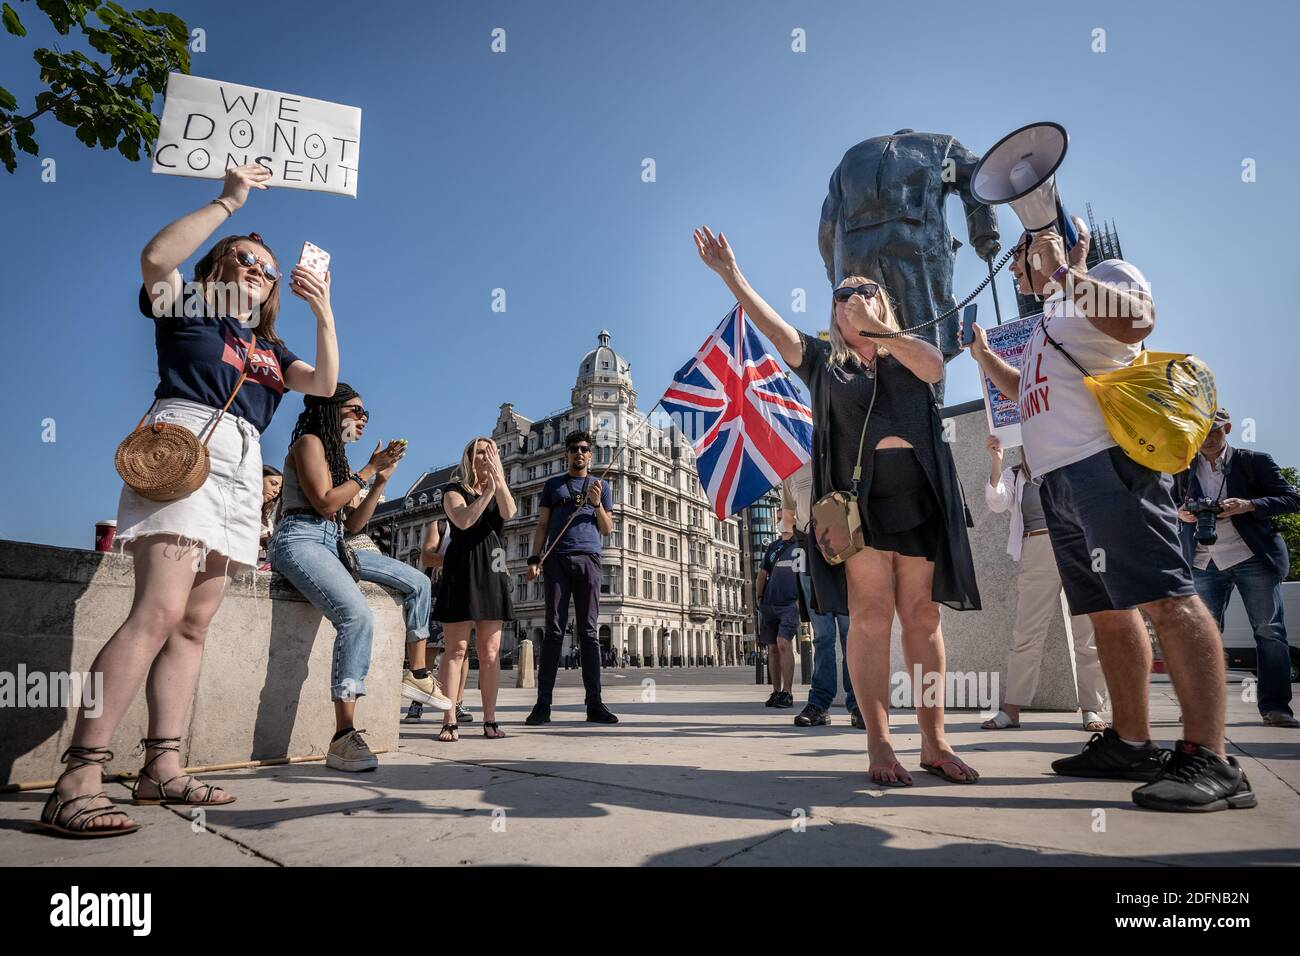 Coronavirus: Anti-Lockdown protest in Parliament Square. A small gathering of anti-lockdown protesters from Stand-Up X movement gather in the square. Stock Photo